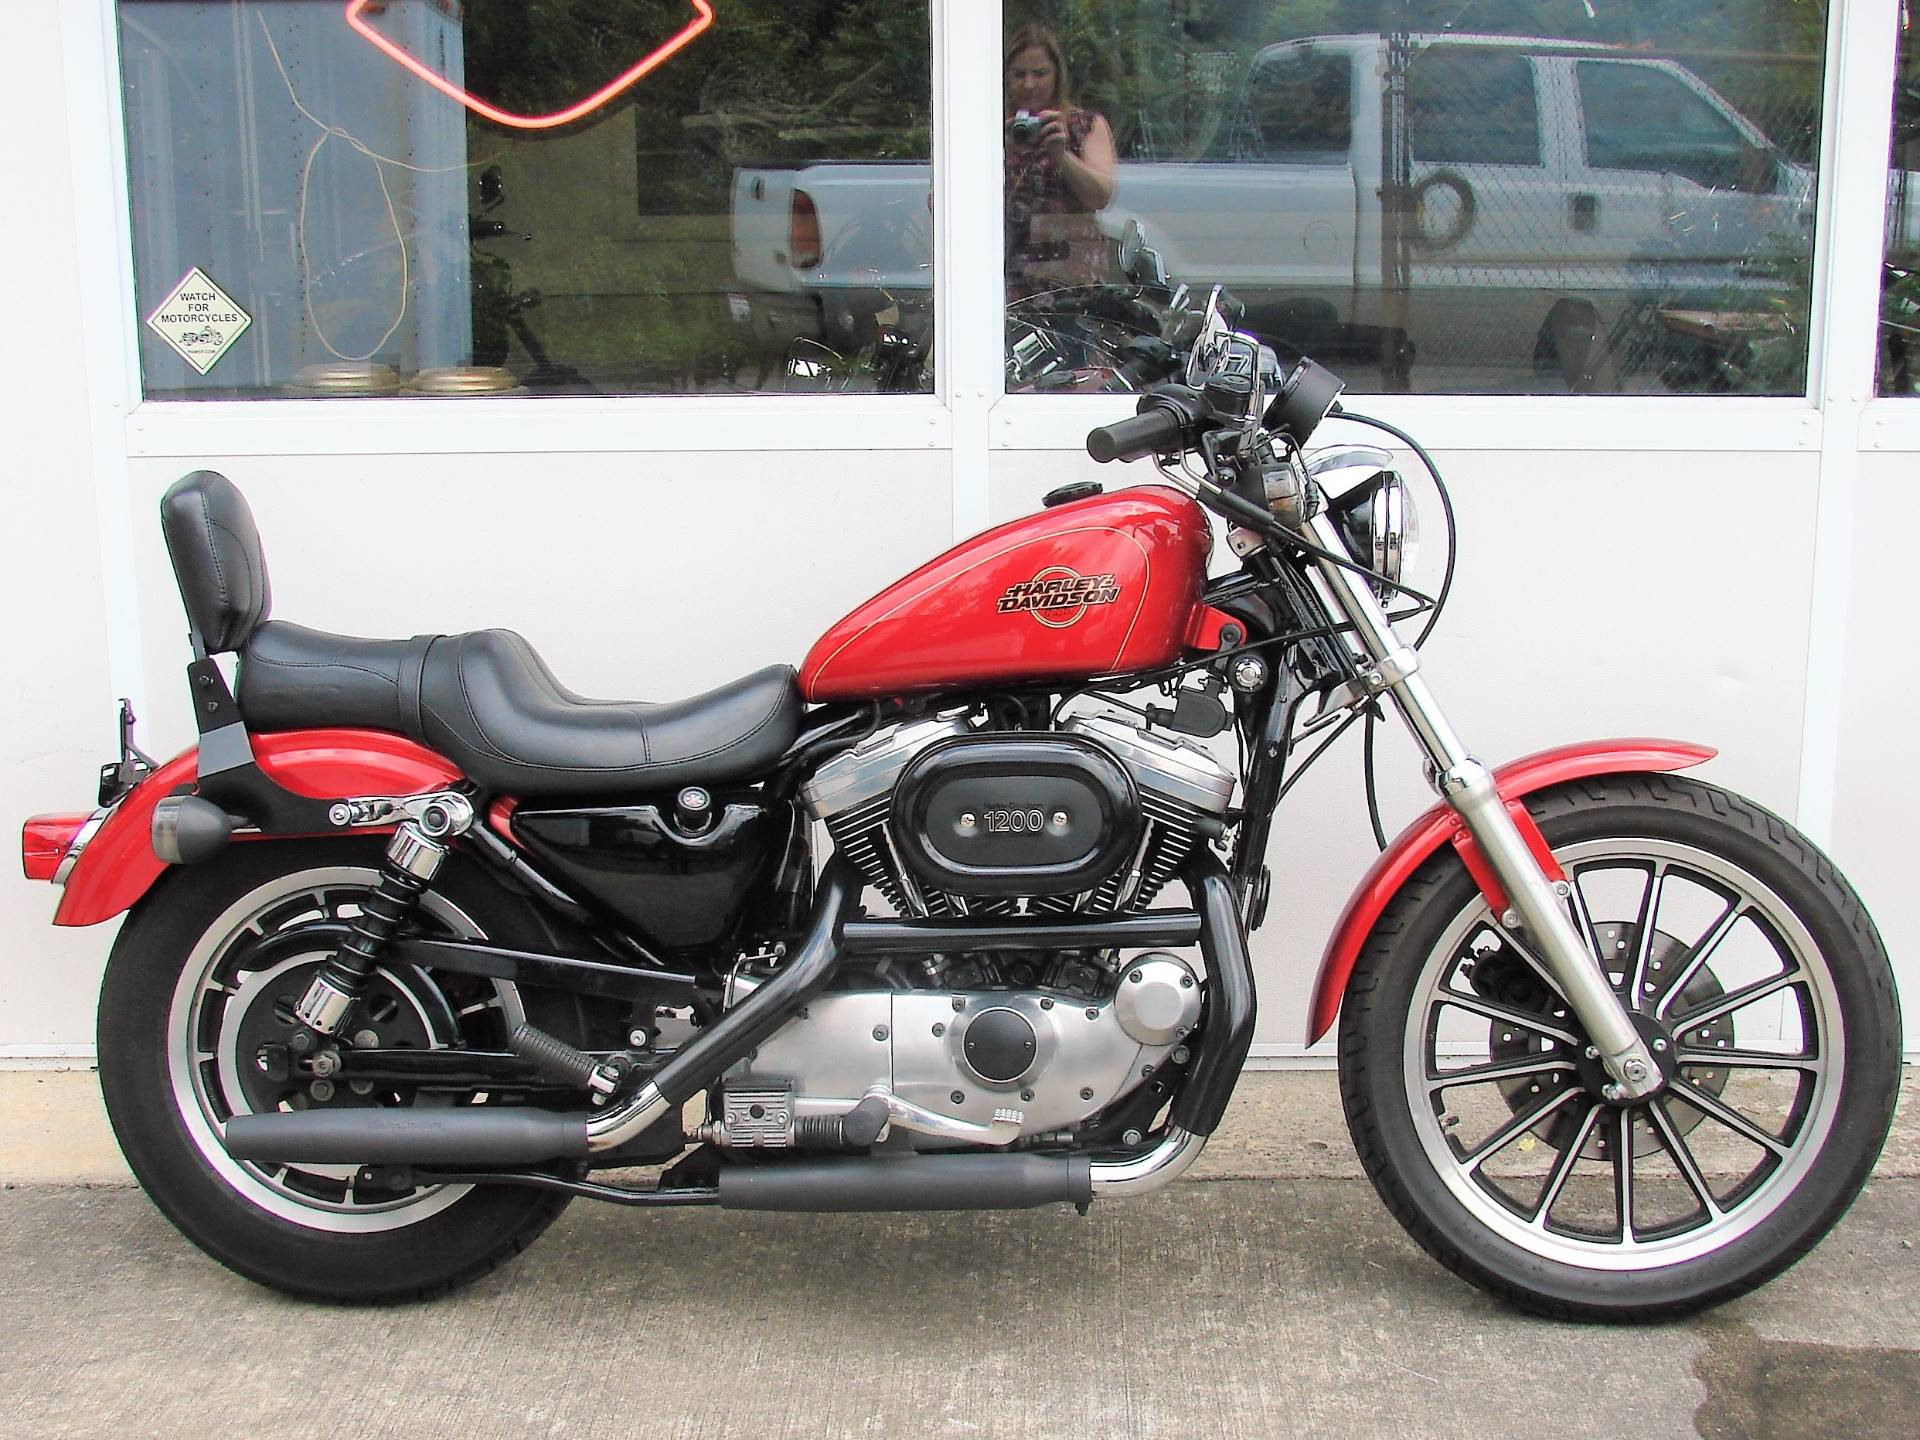 1996 Harley-Davidson XL 1200 Sportster  (Runs Good!) in Williamstown, New Jersey - Photo 11